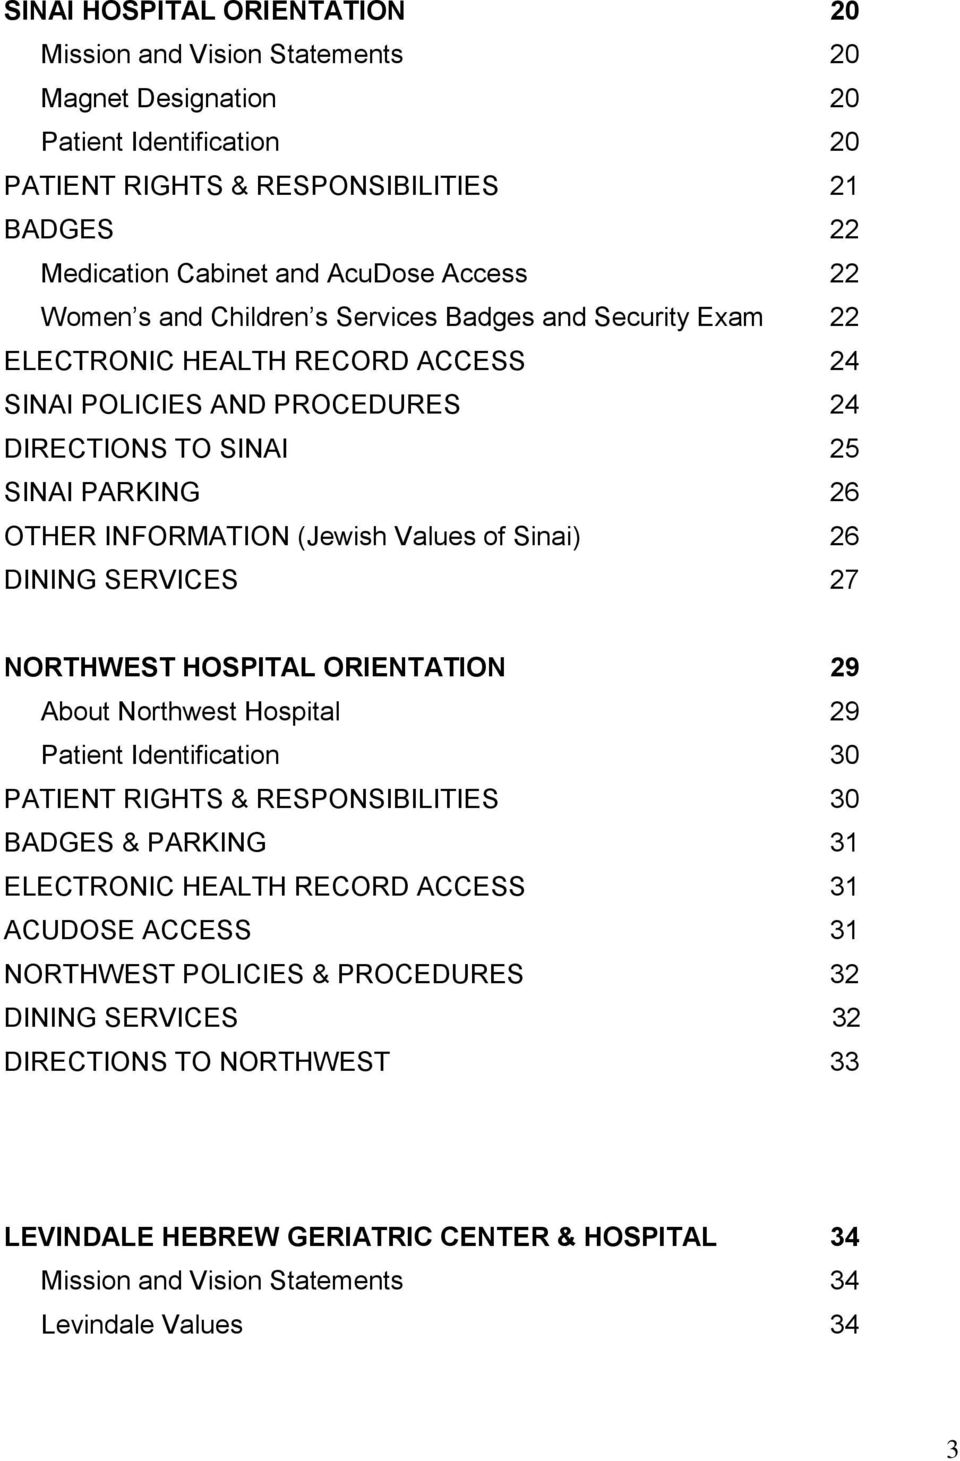 Values of Sinai) 26 DINING SERVICES 27 NORTHWEST HOSPITAL ORIENTATION 29 About Northwest Hospital 29 Patient Identification 30 PATIENT RIGHTS & RESPONSIBILITIES 30 BADGES & PARKING 31 ELECTRONIC